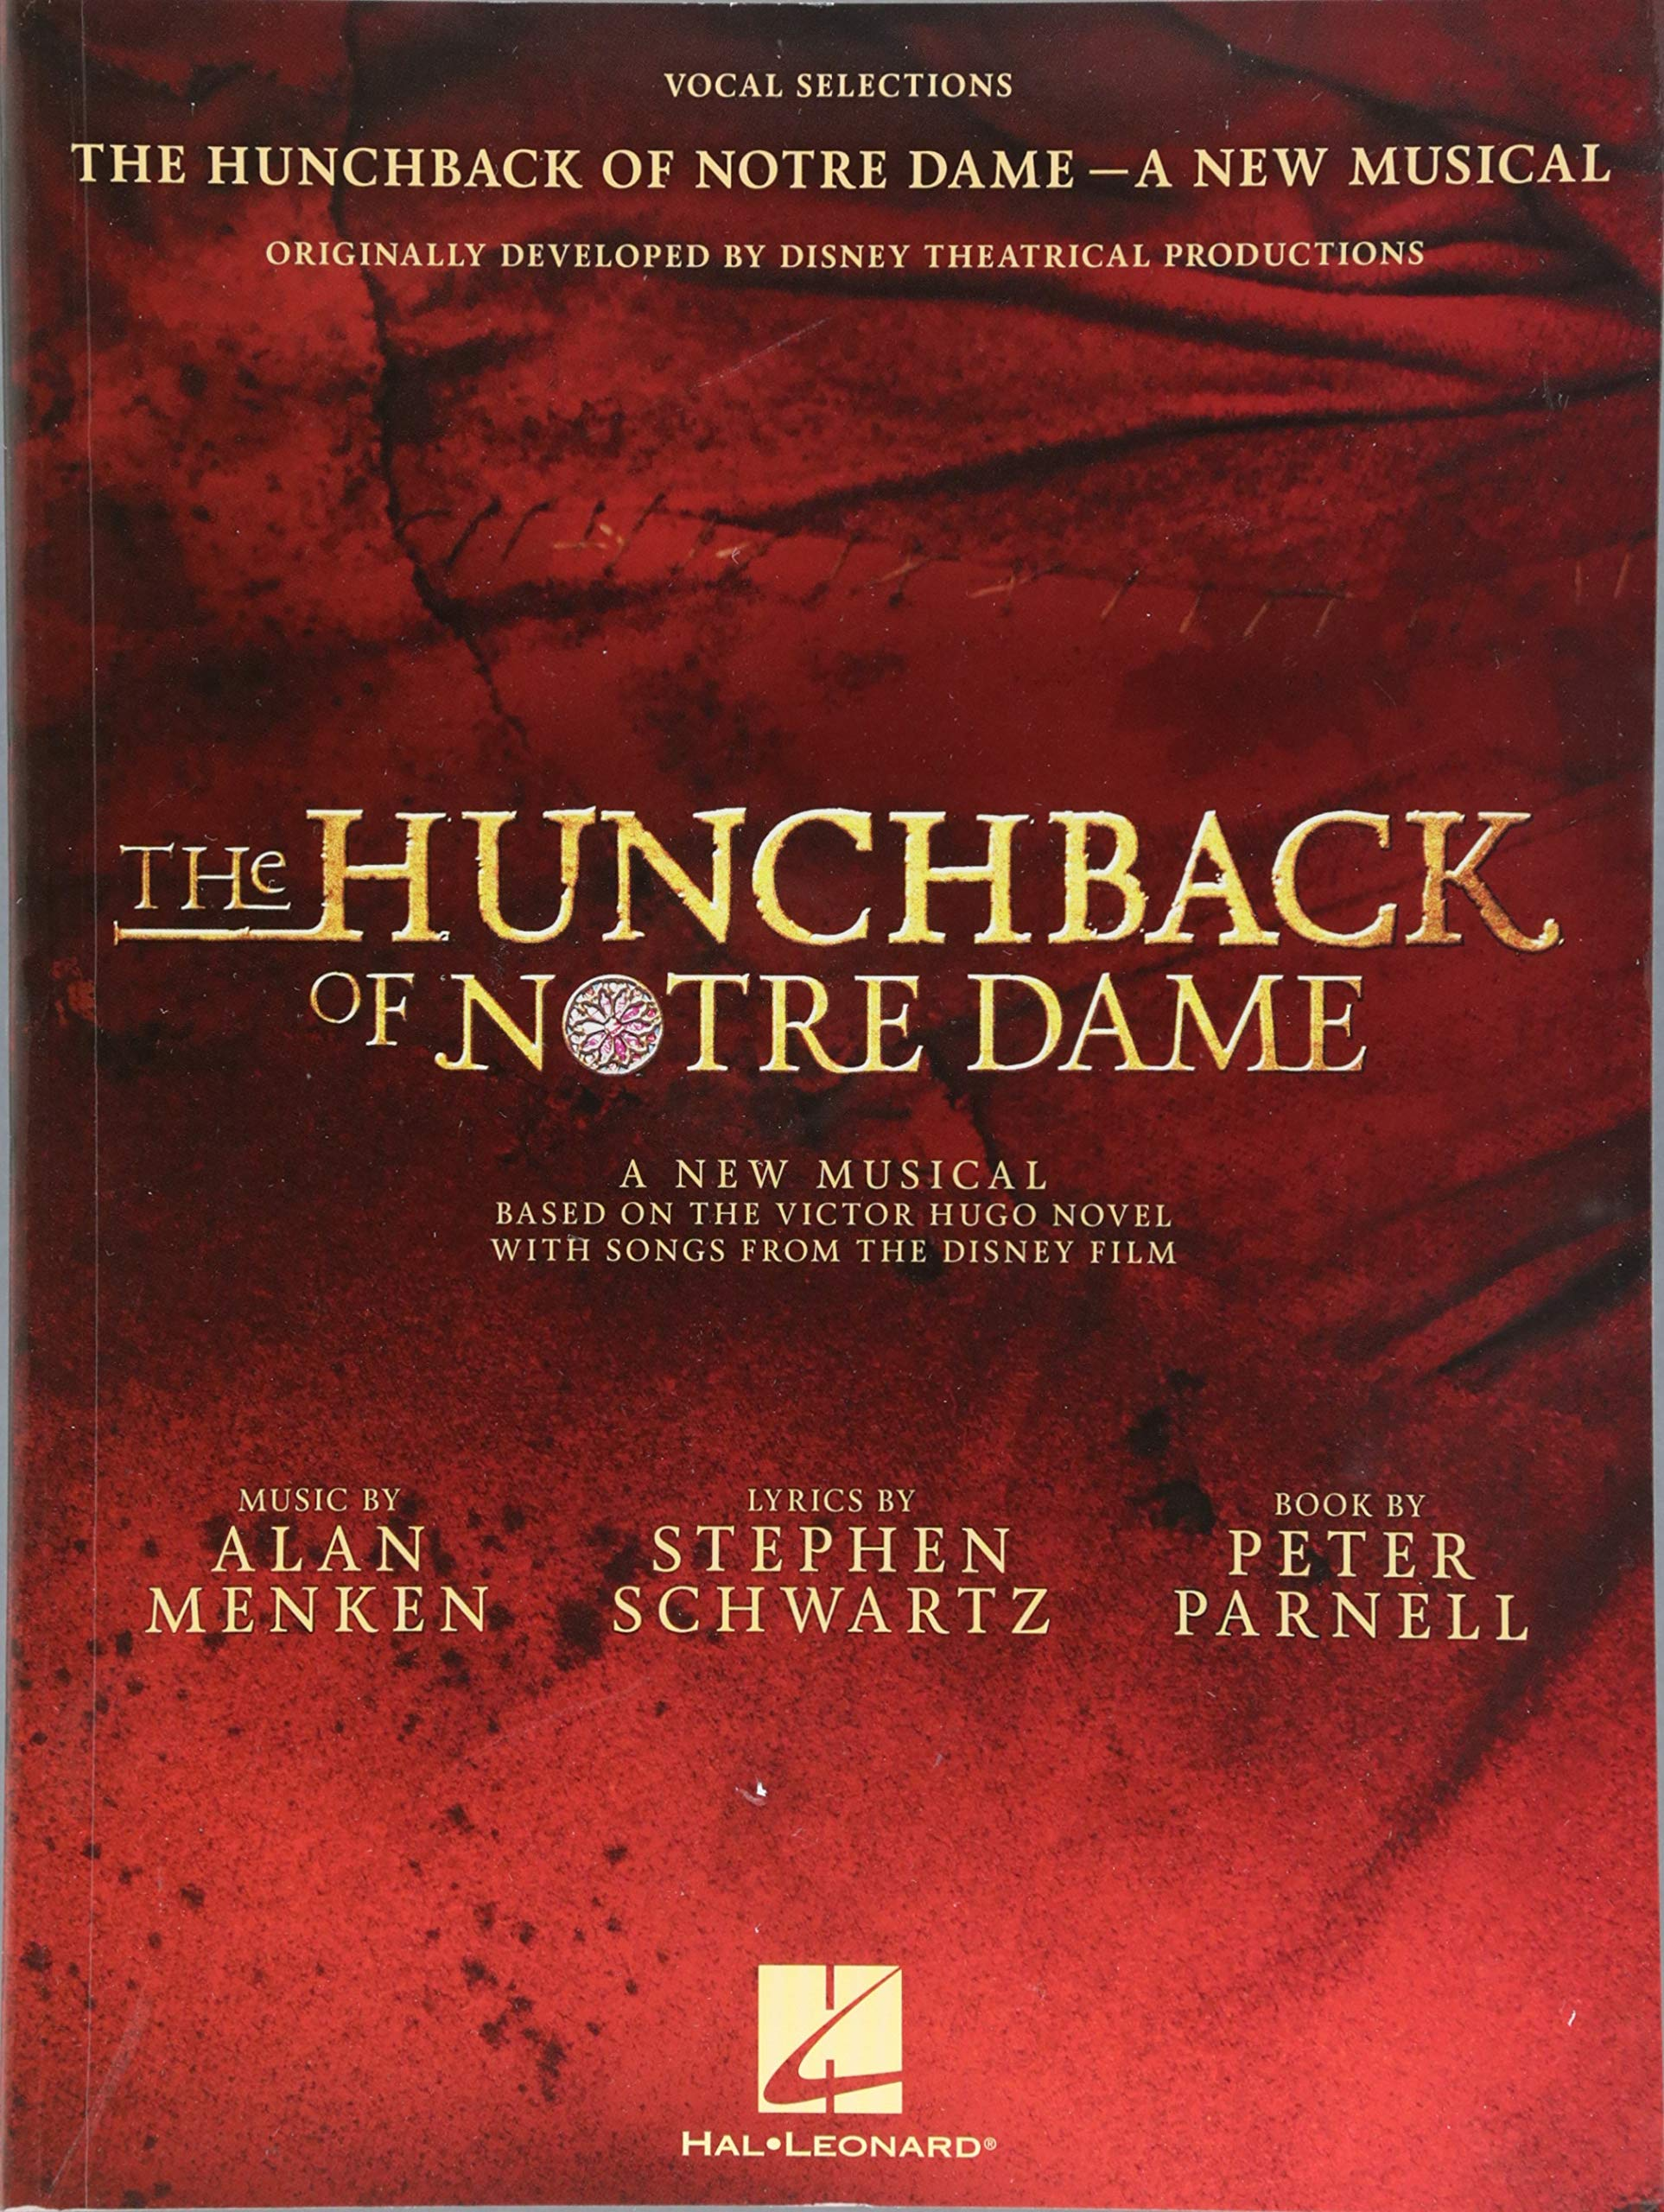 The Hunchback Of Notre Dame  The Stage Musical  Vocal Selections   Songbook Für Gesang